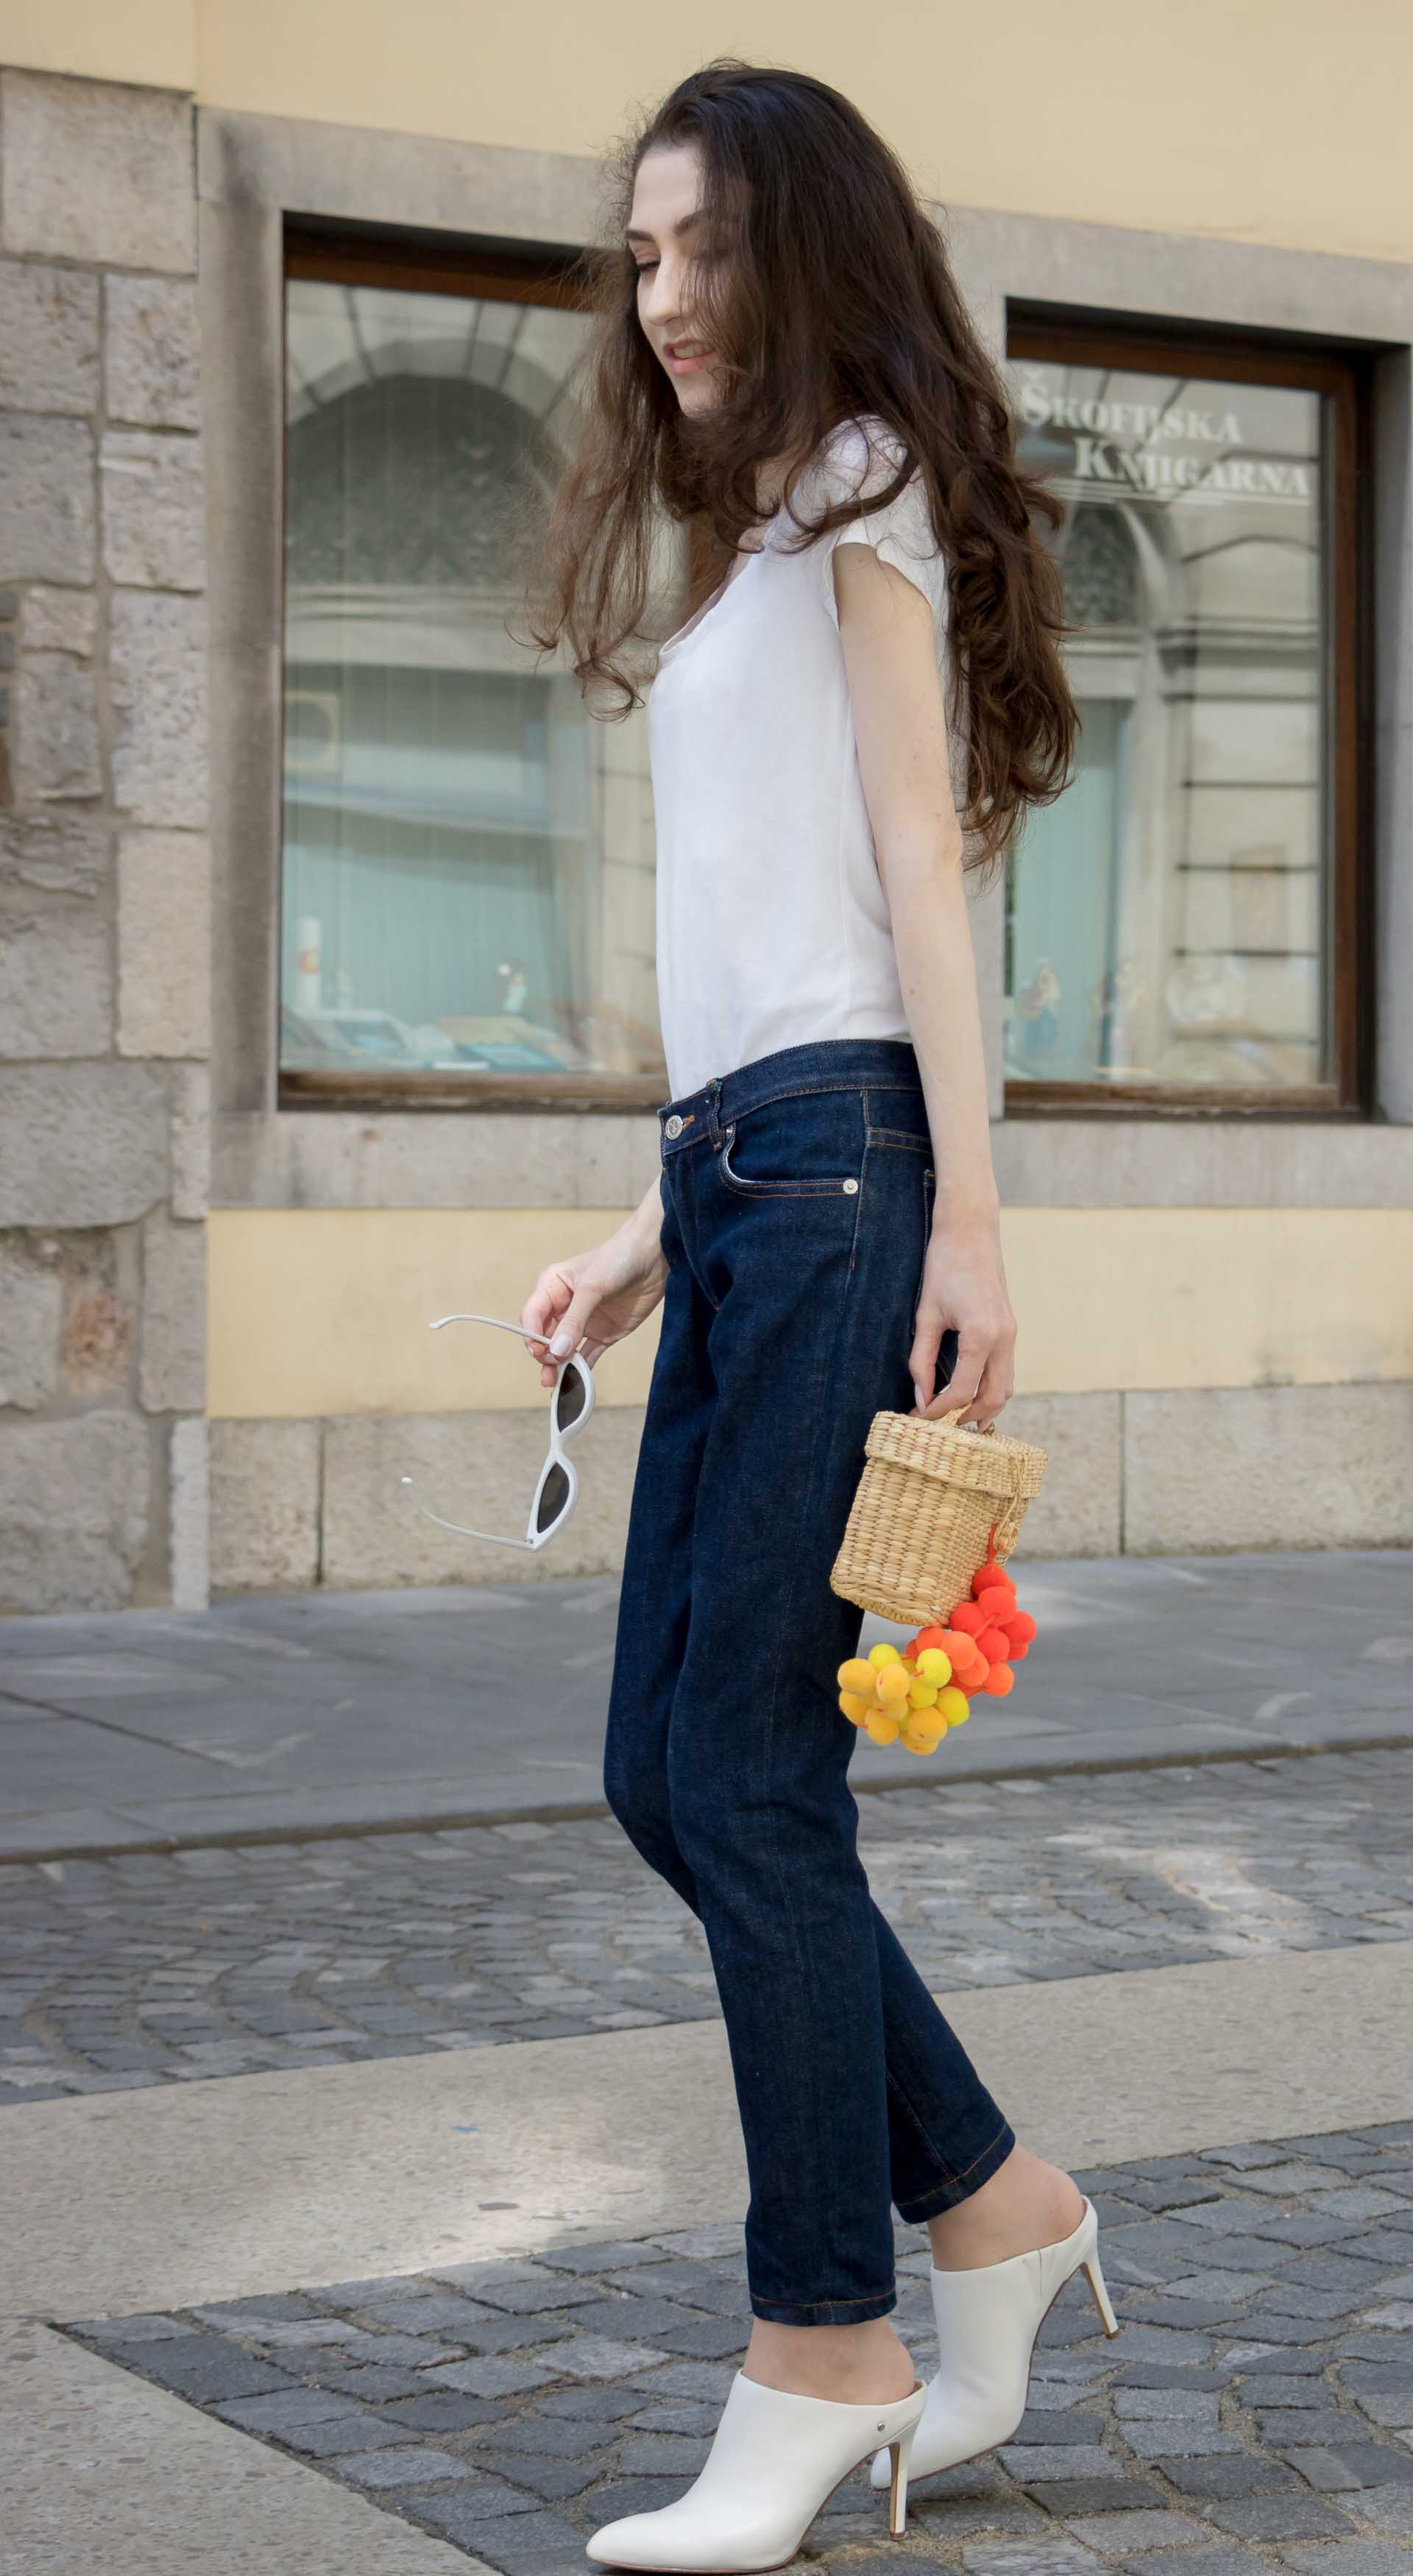 Veronika Lipar Fashion Editor of Brunette from Wall Street wearing summer basics dark blue tapered jeans from A.P.C., H&M white T-shirt, Nannacay basket bag, white mules and Adam Selman x Le Specs white cat eye Lolita sunglasses on the street